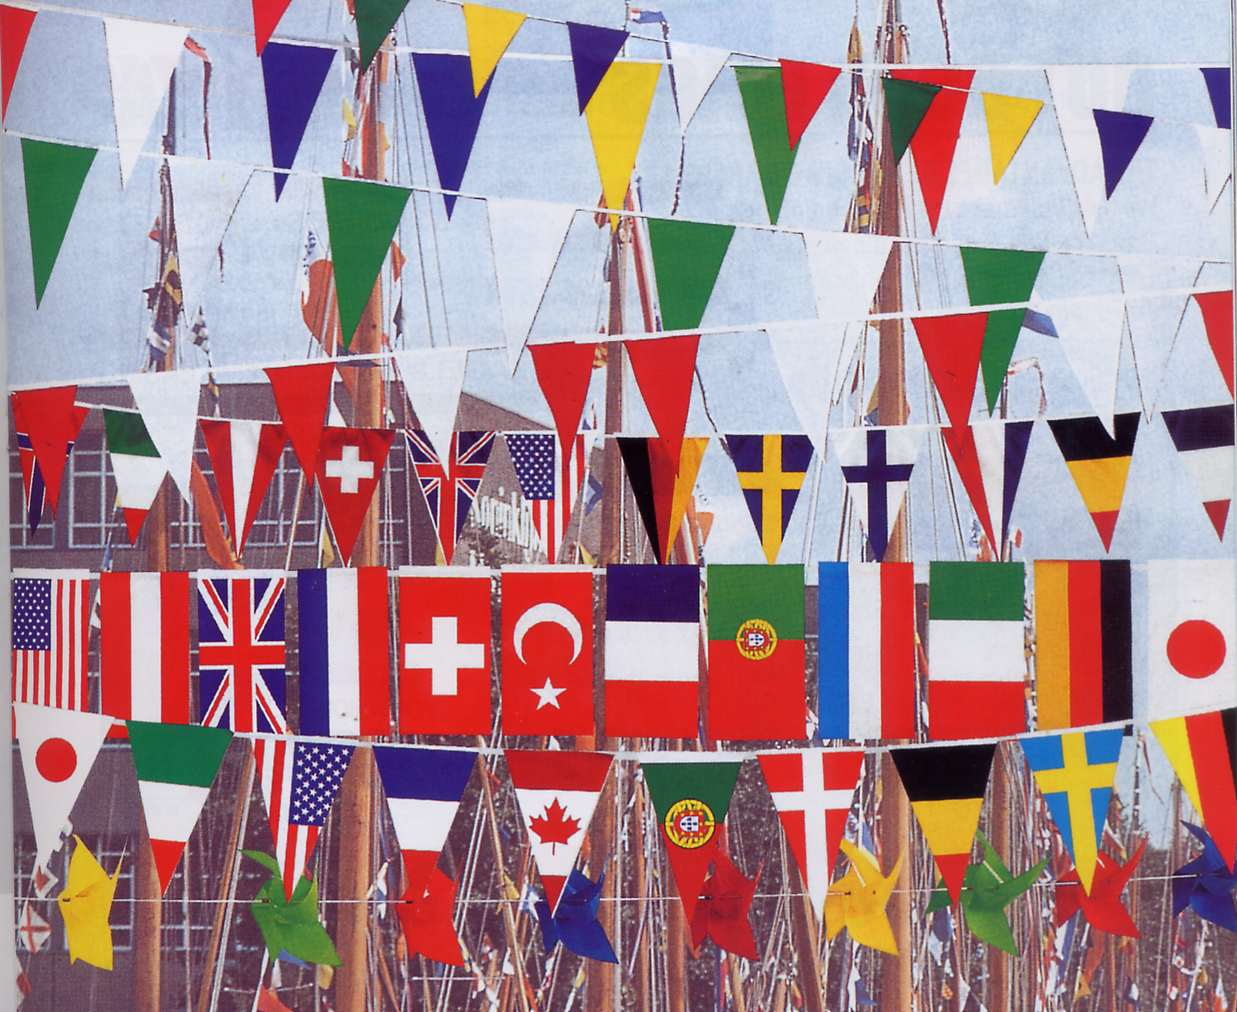 Individual Flags Of The World Countries